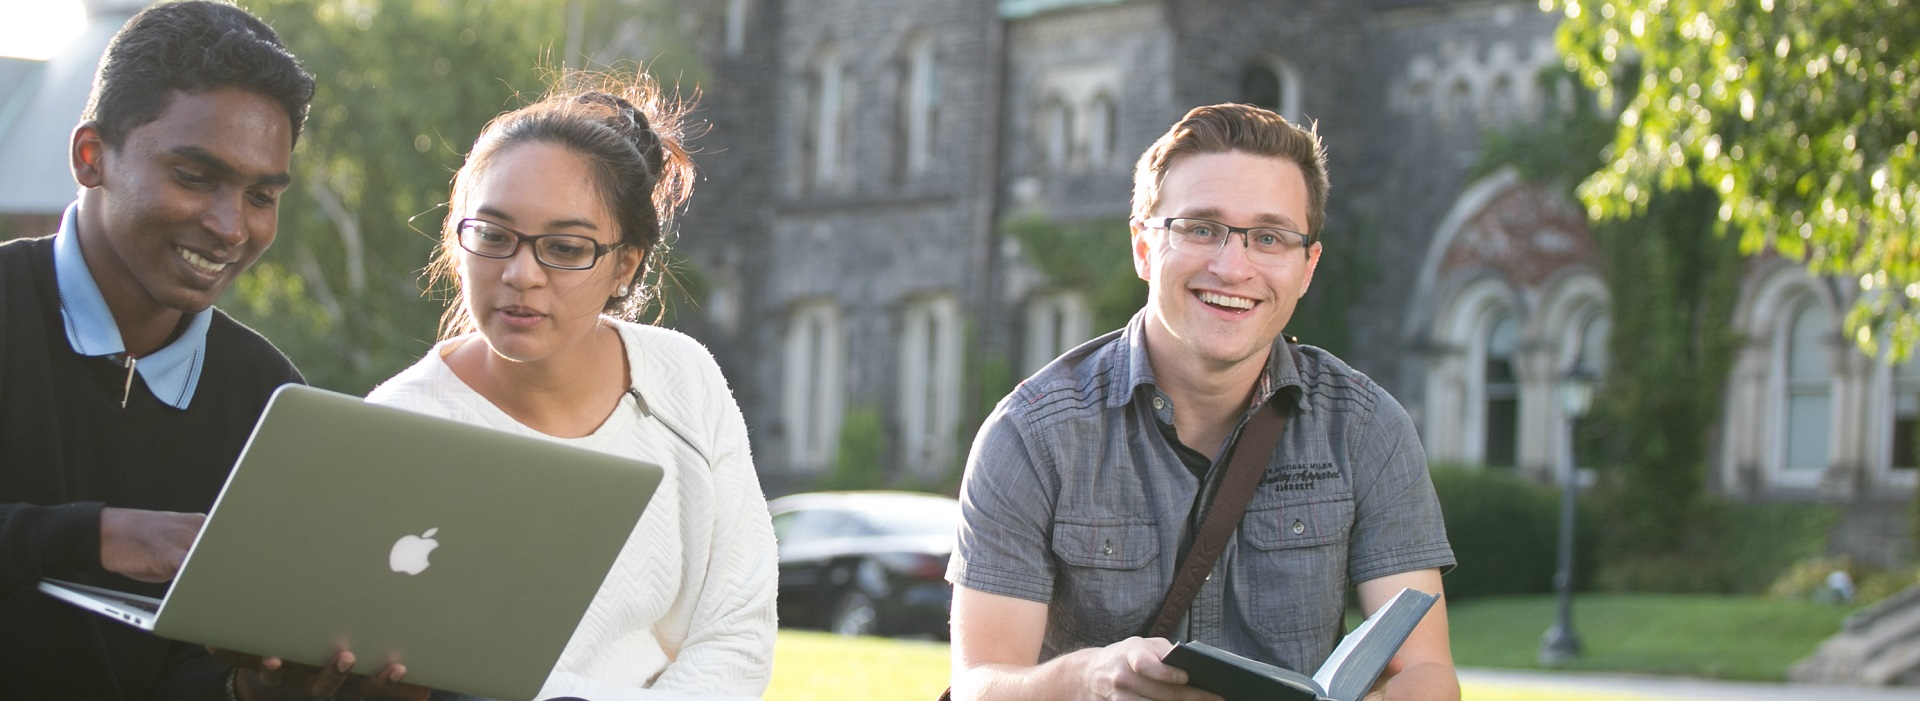 Students studying near Wycliffe College at University of Toronto